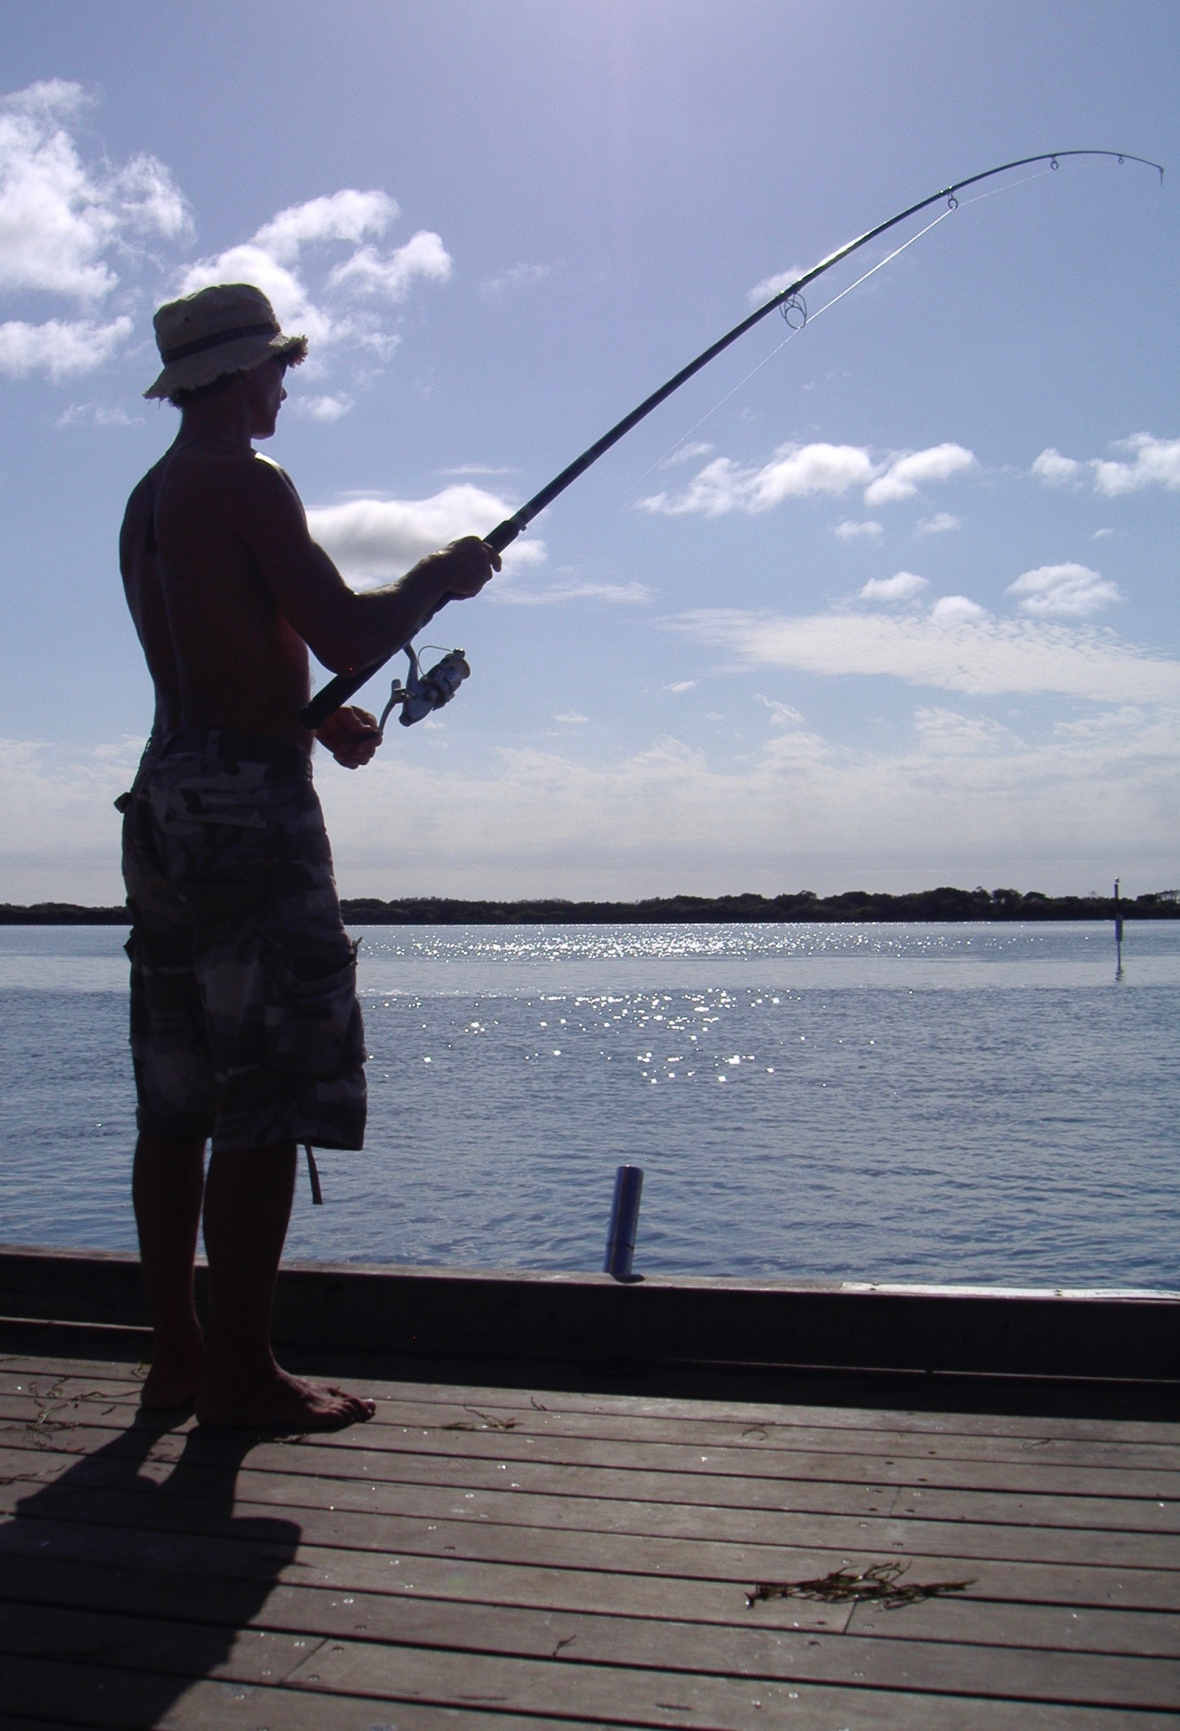 Fishing off the jetty in Caloundra, Queensland, Australia